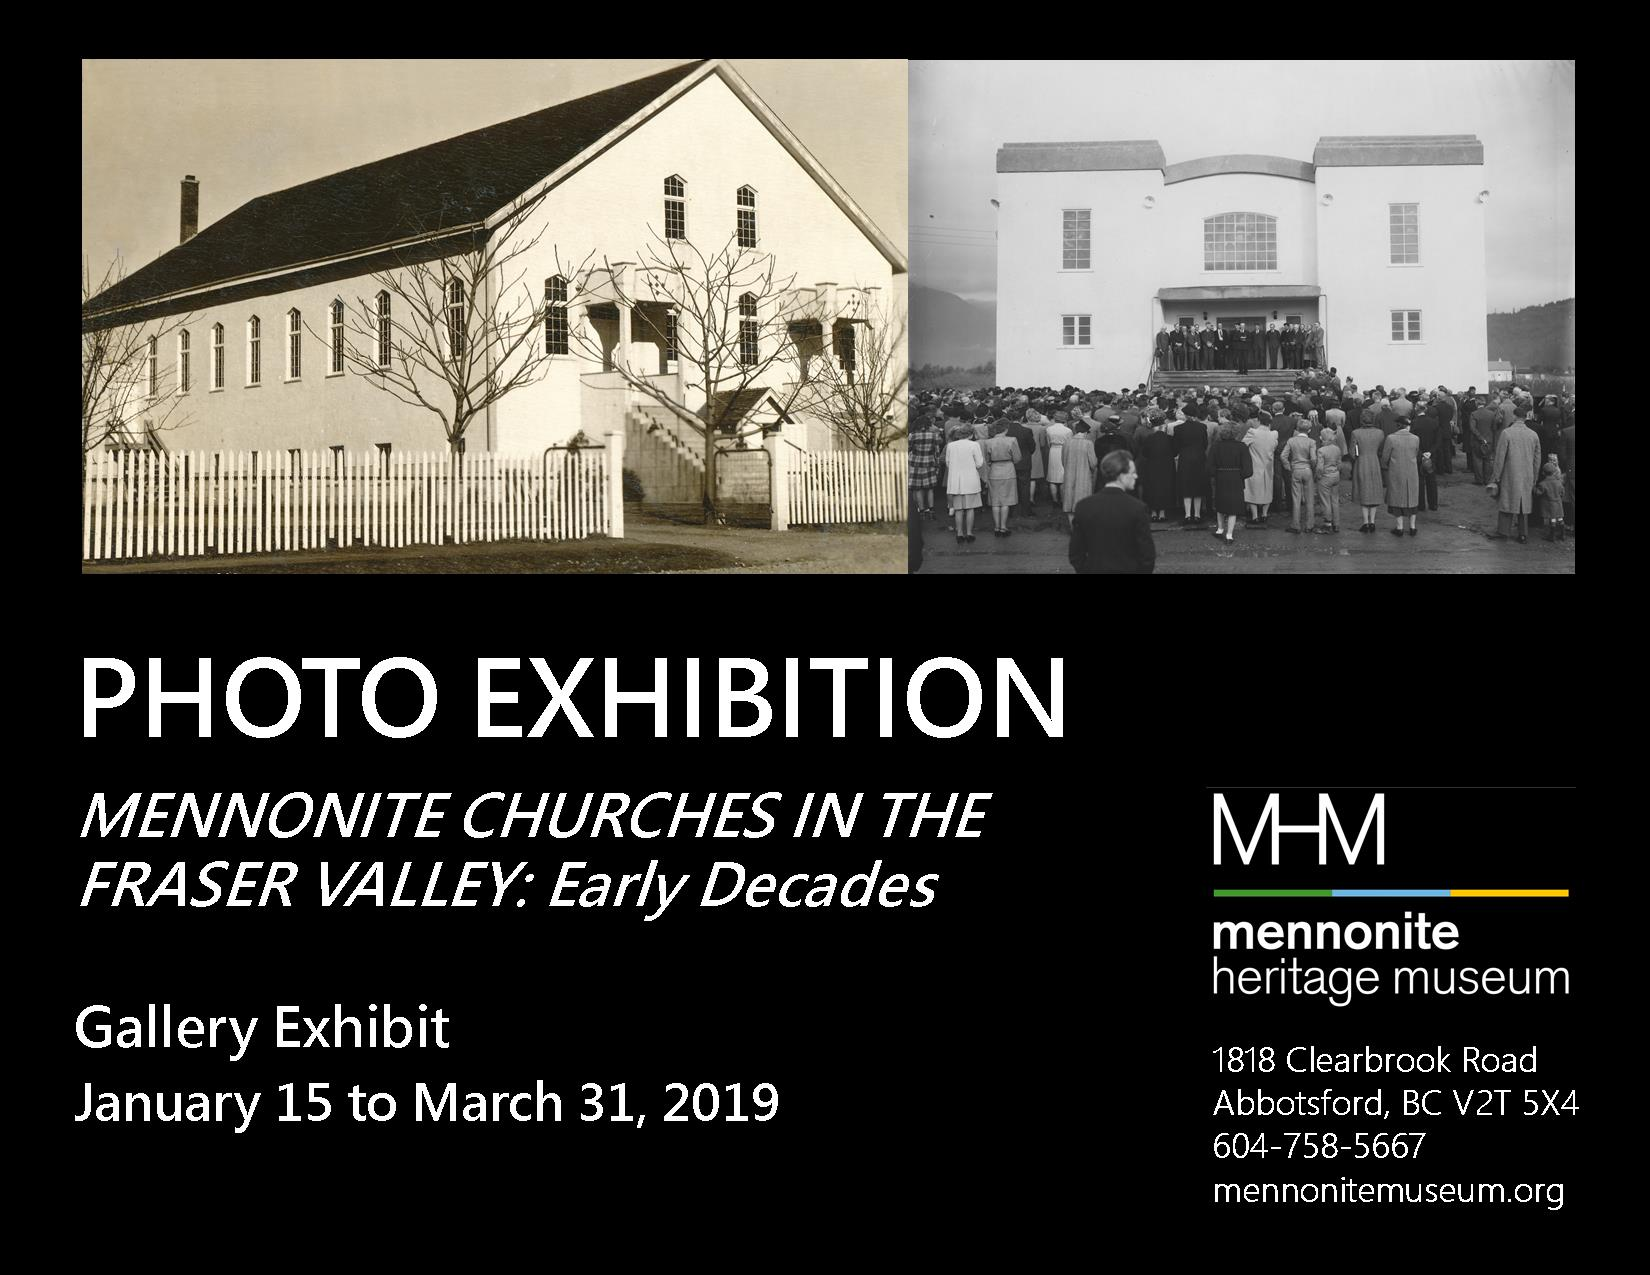 2019 01 15 MHM Gallery Exhibit Photo Exhibition Mennonite Churches in the Fraser Valley Early Decades